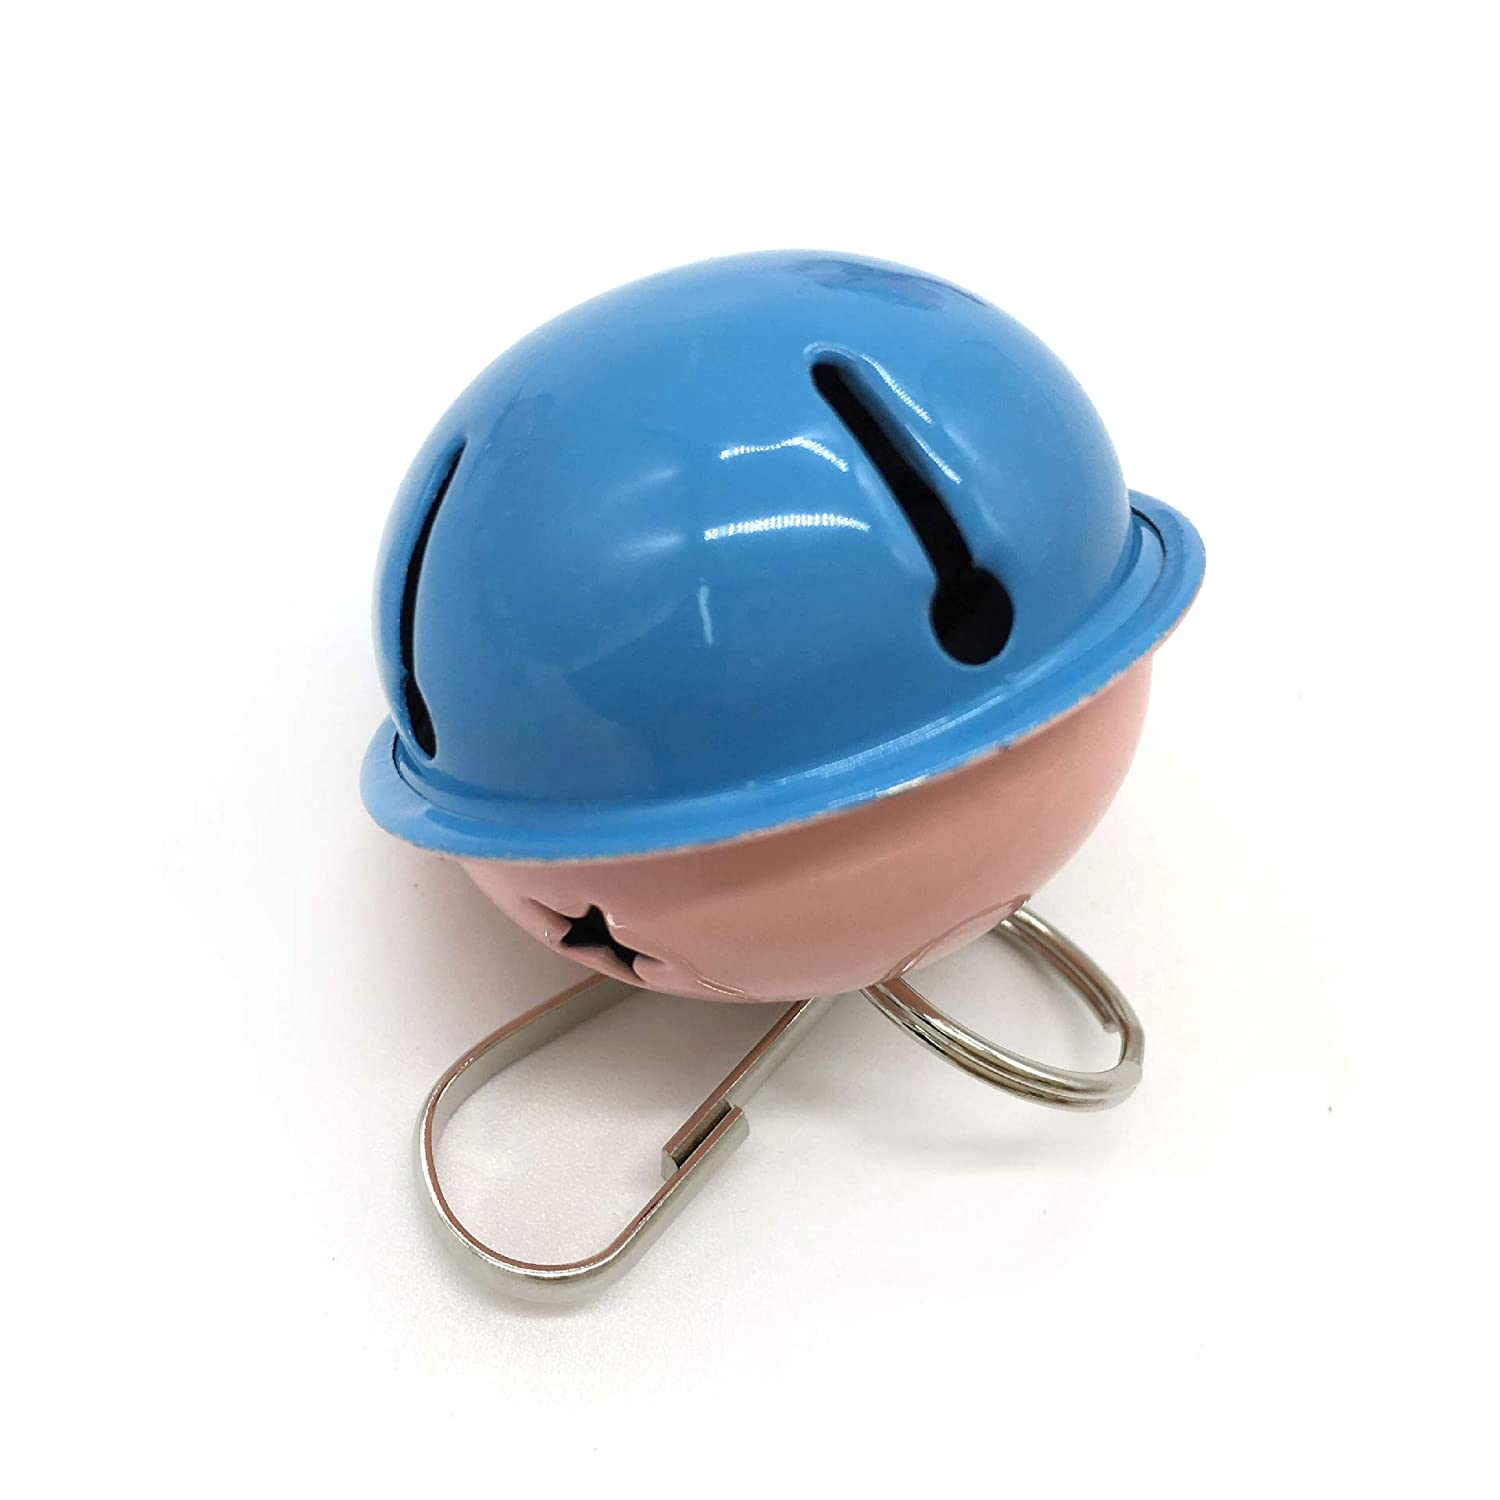 A Pet Online Parred Interactive Toy Two-color Bell Ball, A